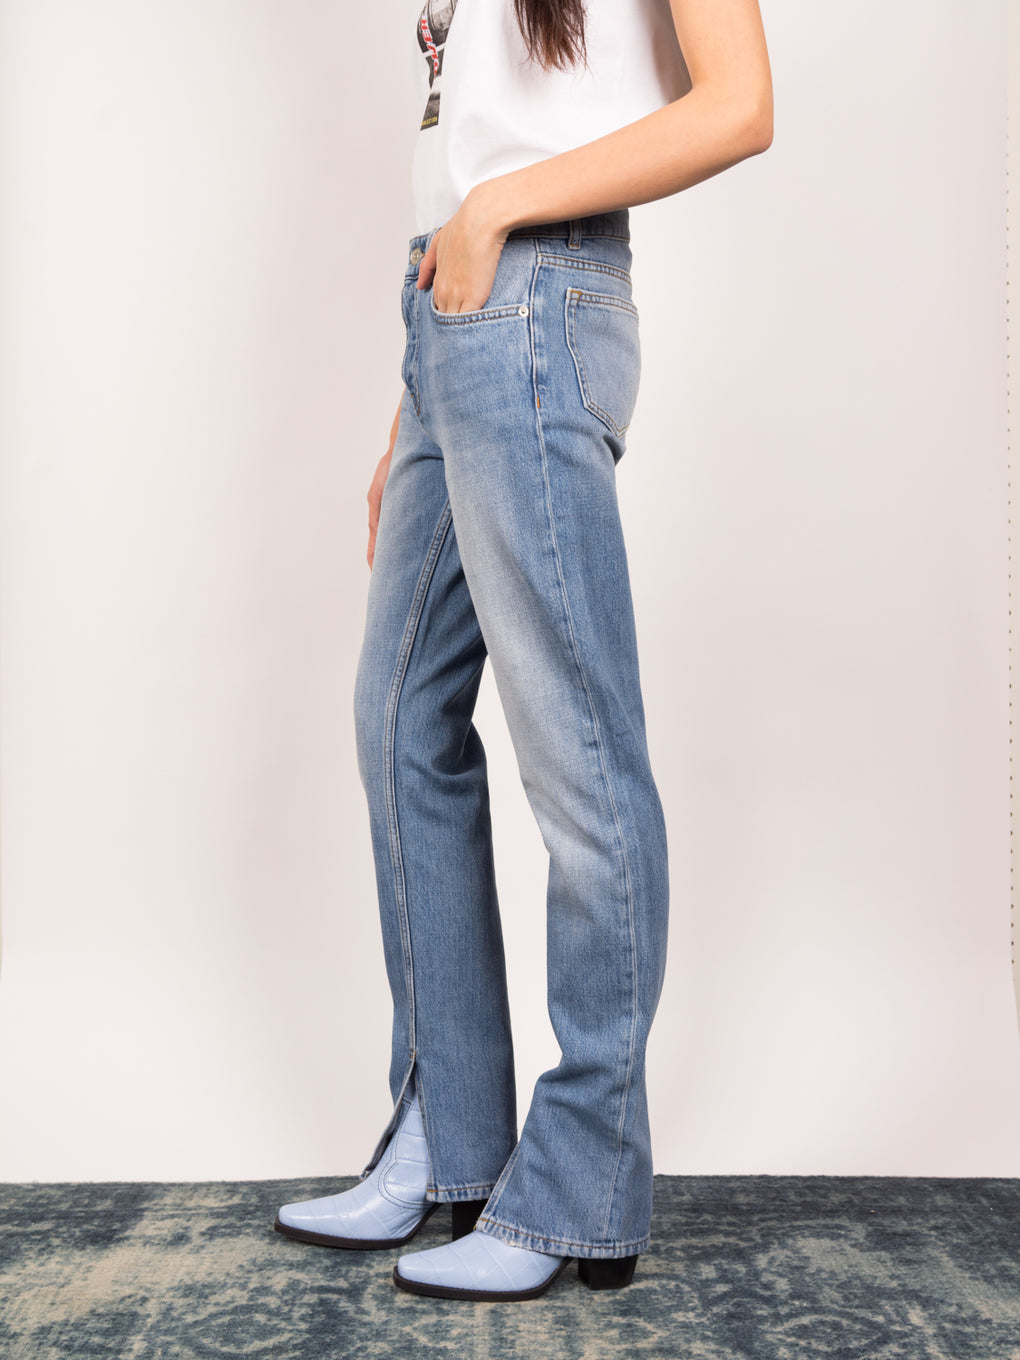 Ganni womens silm jeans in light wash for SS19